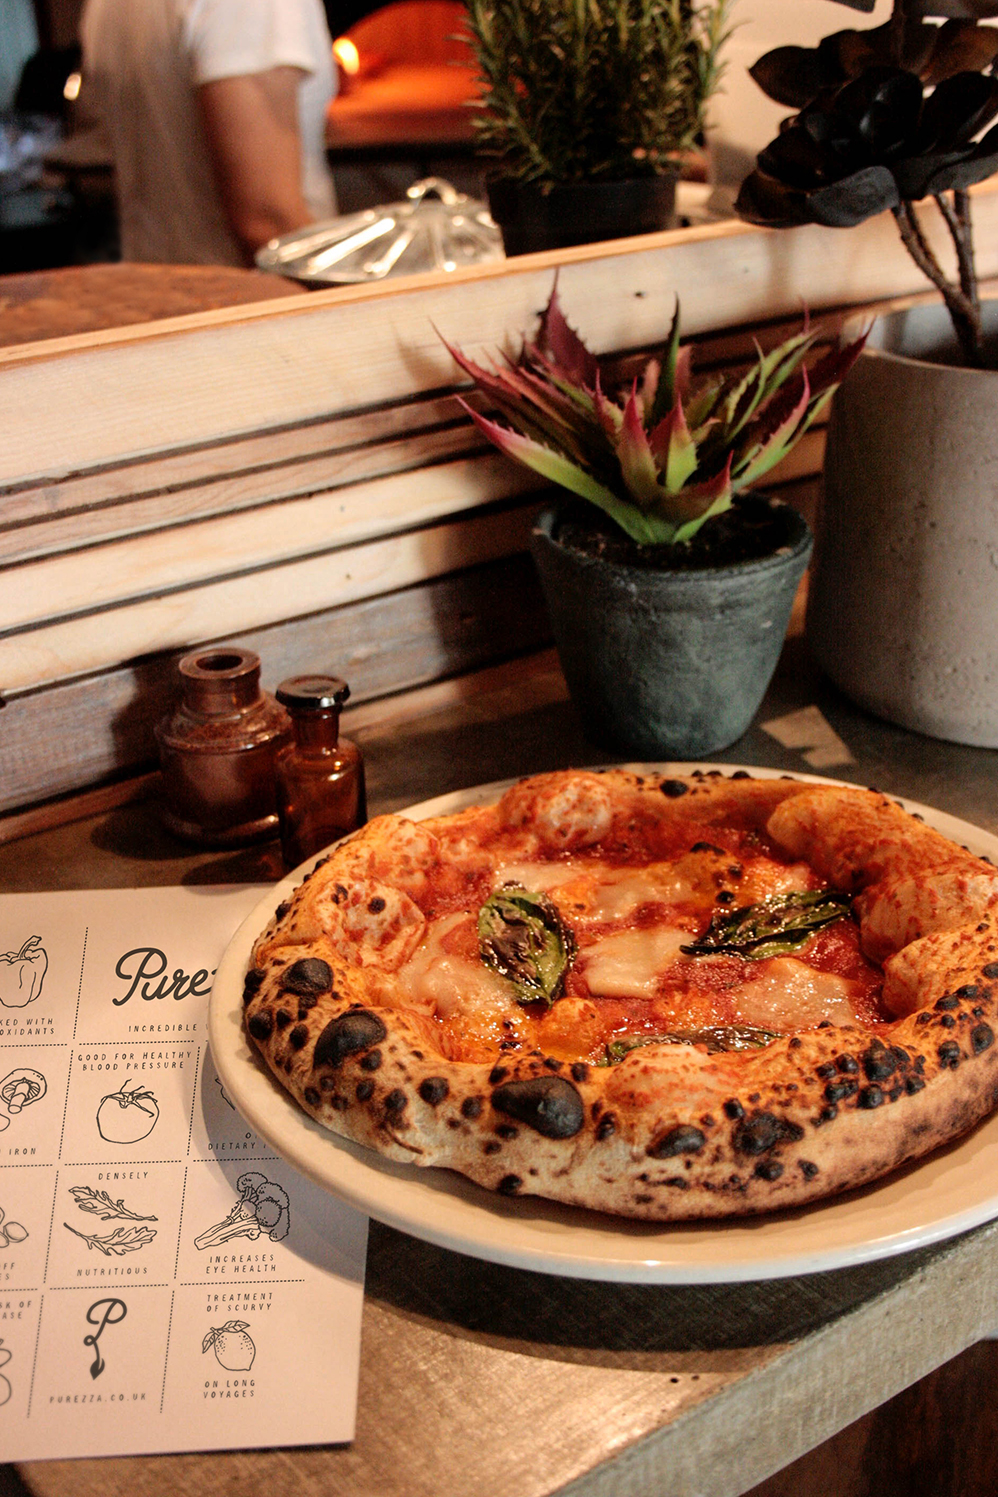 Purezza-vegan-interior-design-food-branding-cool-restaurant-pizza-brighton-dining